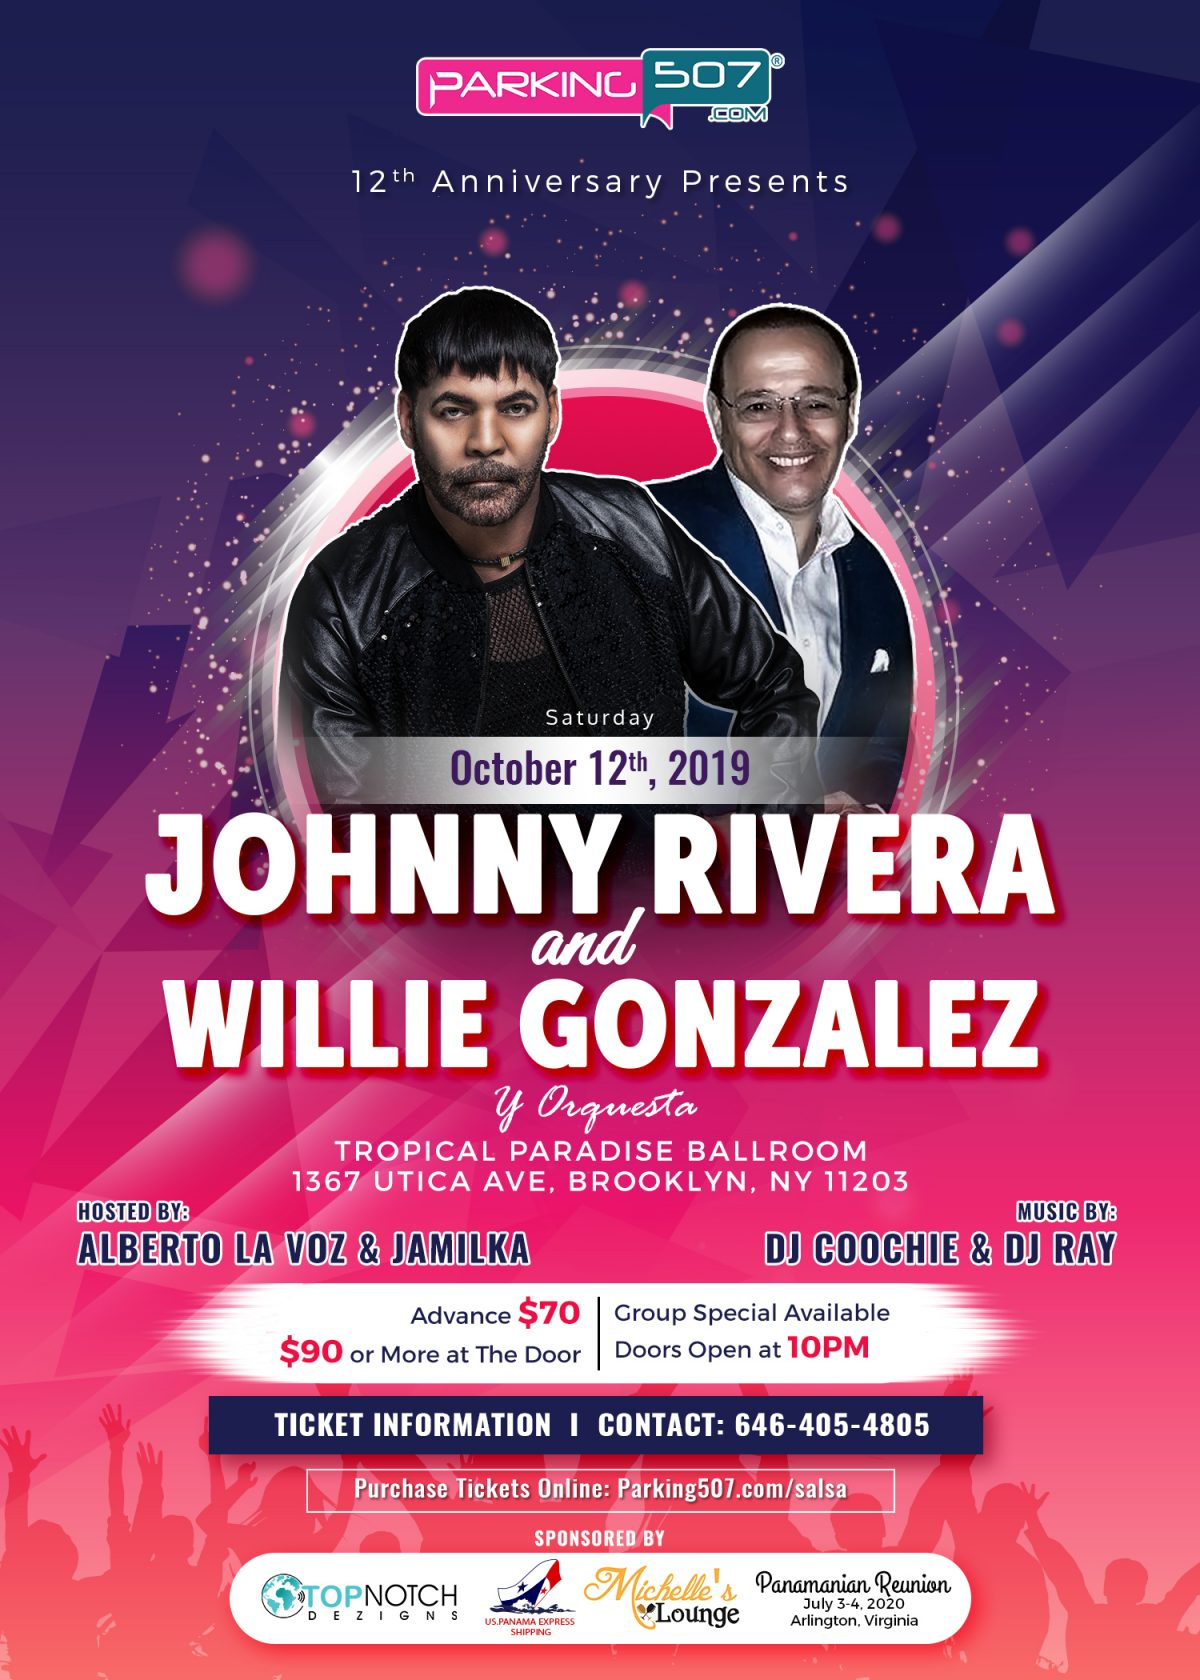 Johnny Rivera & Willie Gonzalez Salsa Performance in Brooklyn New York